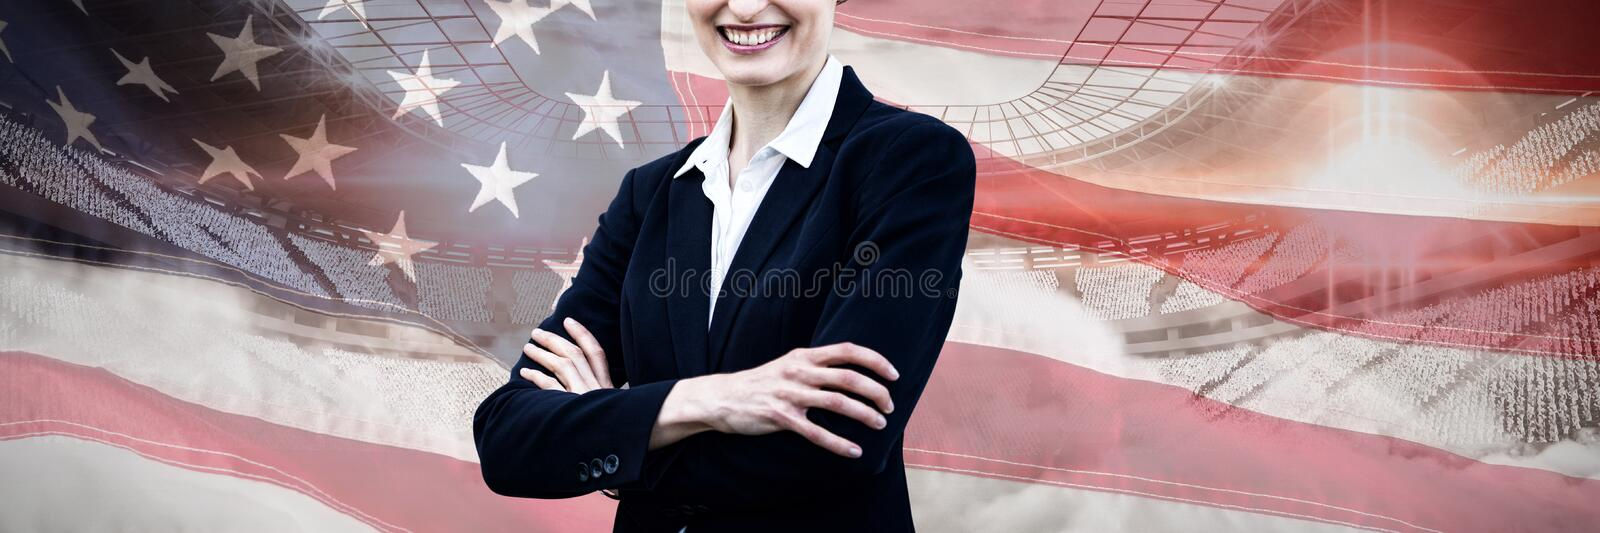 Composite image of portrait of young businesswoman standing with arms crossed royalty free stock image